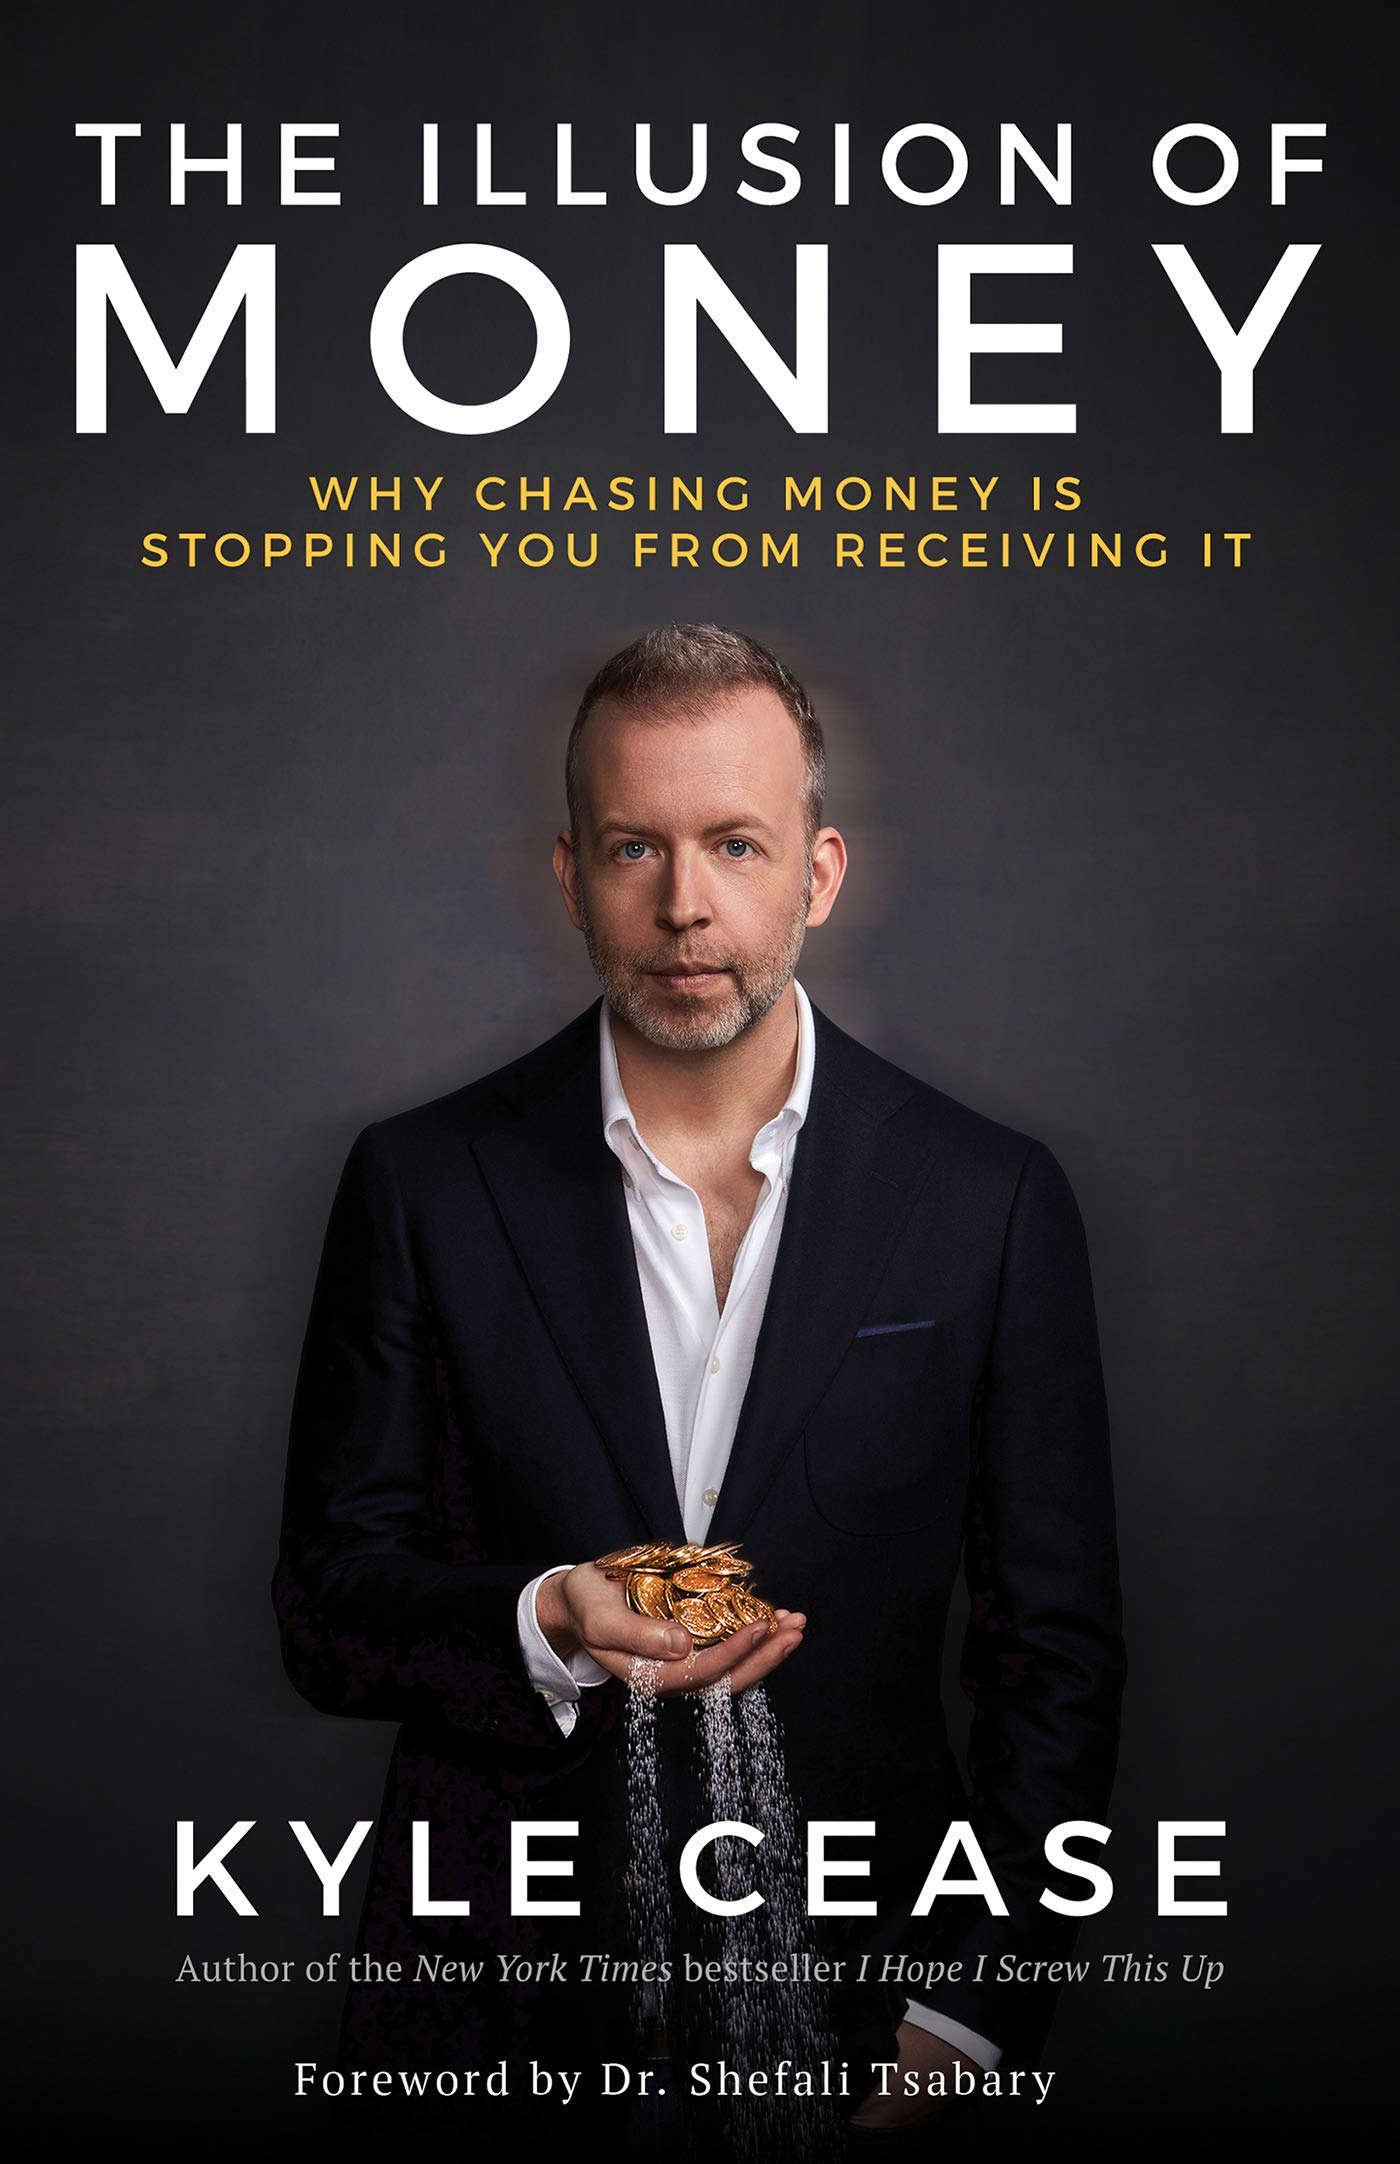 The Illusion of Money: How Chasing Money Is Stopping You from Living